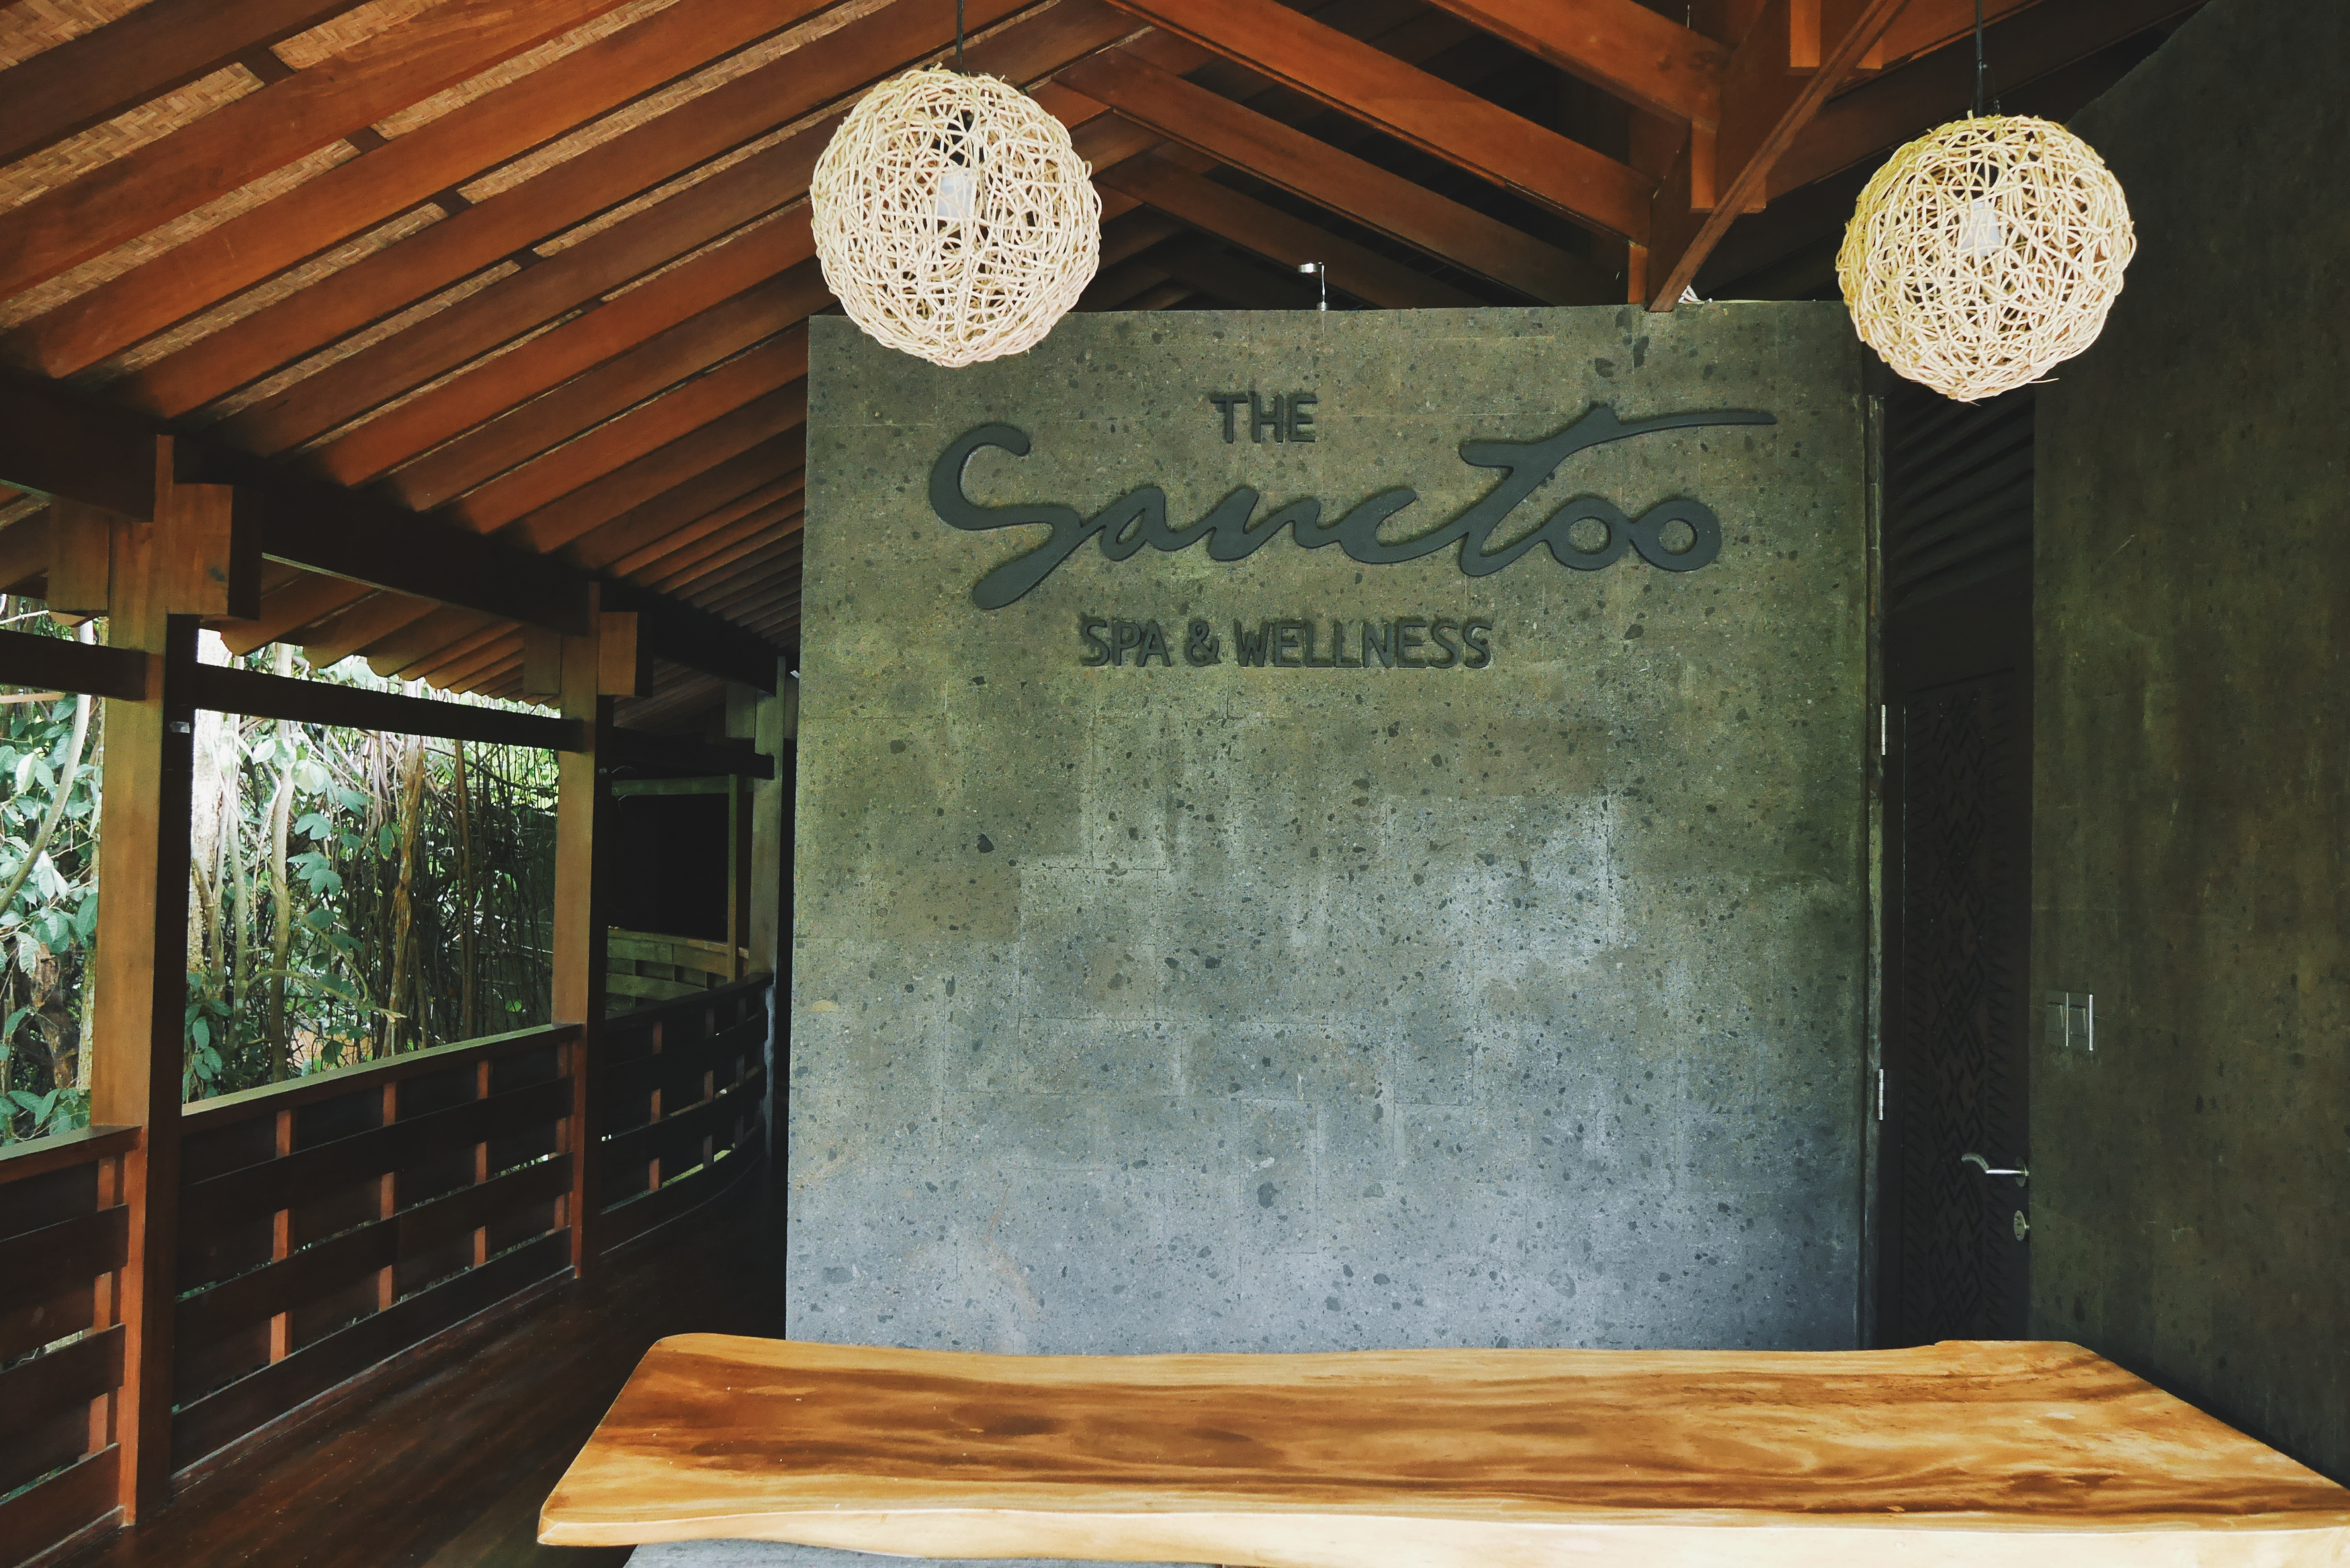 The Sanctoo Spa and Wellness